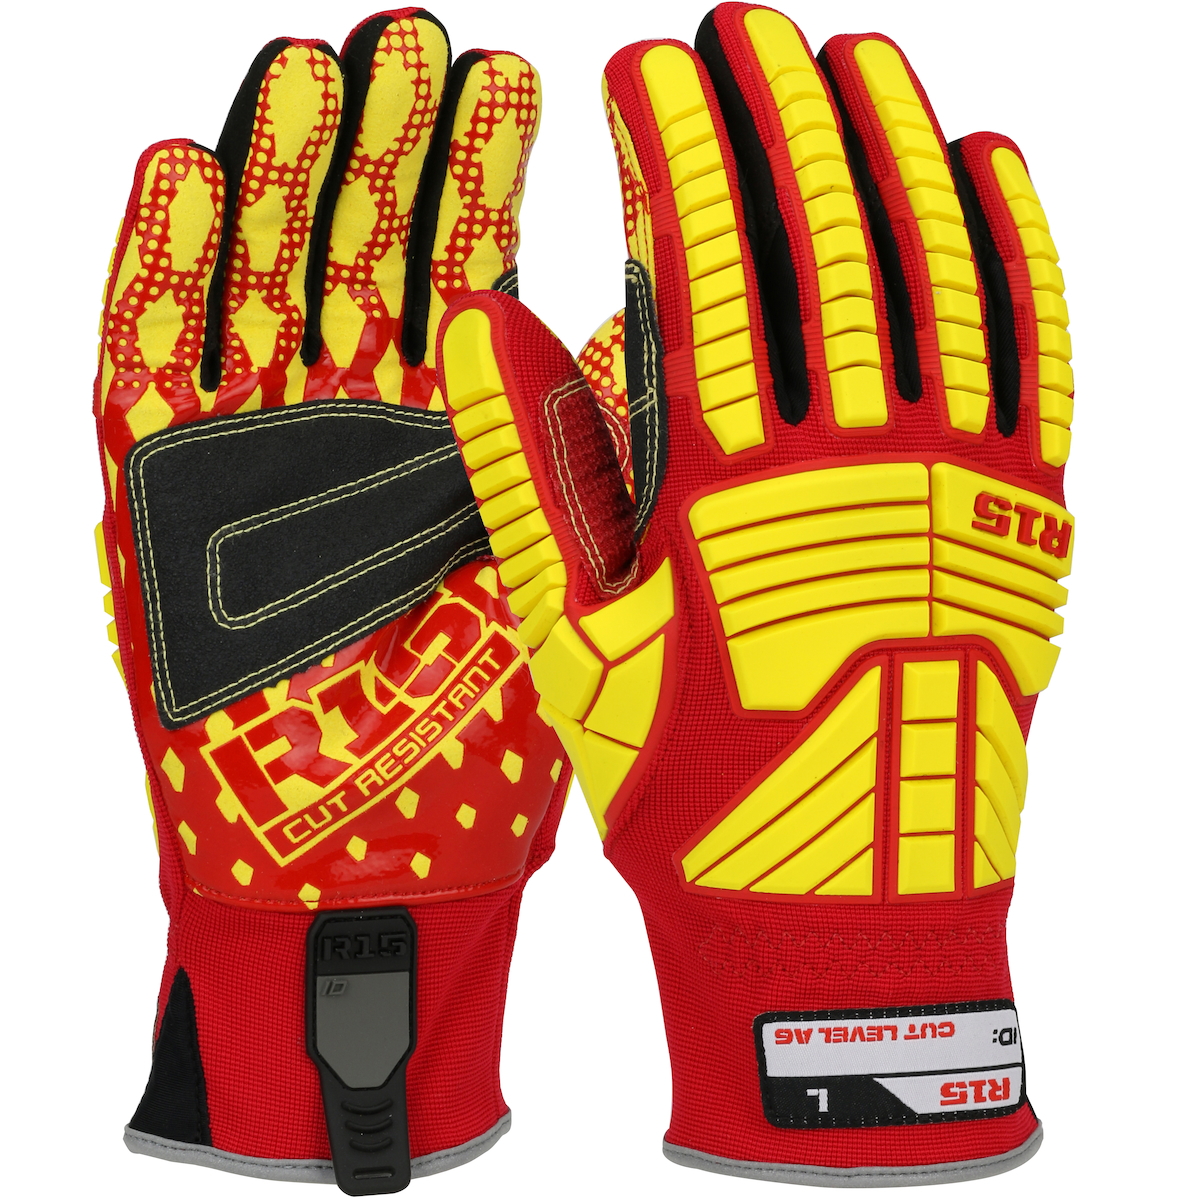 West Chester 87015/3X 87015 R15™ Rigger Gloves, 3X-Large, Synthetic Leather, Red/Yellow, Band Top Cuff